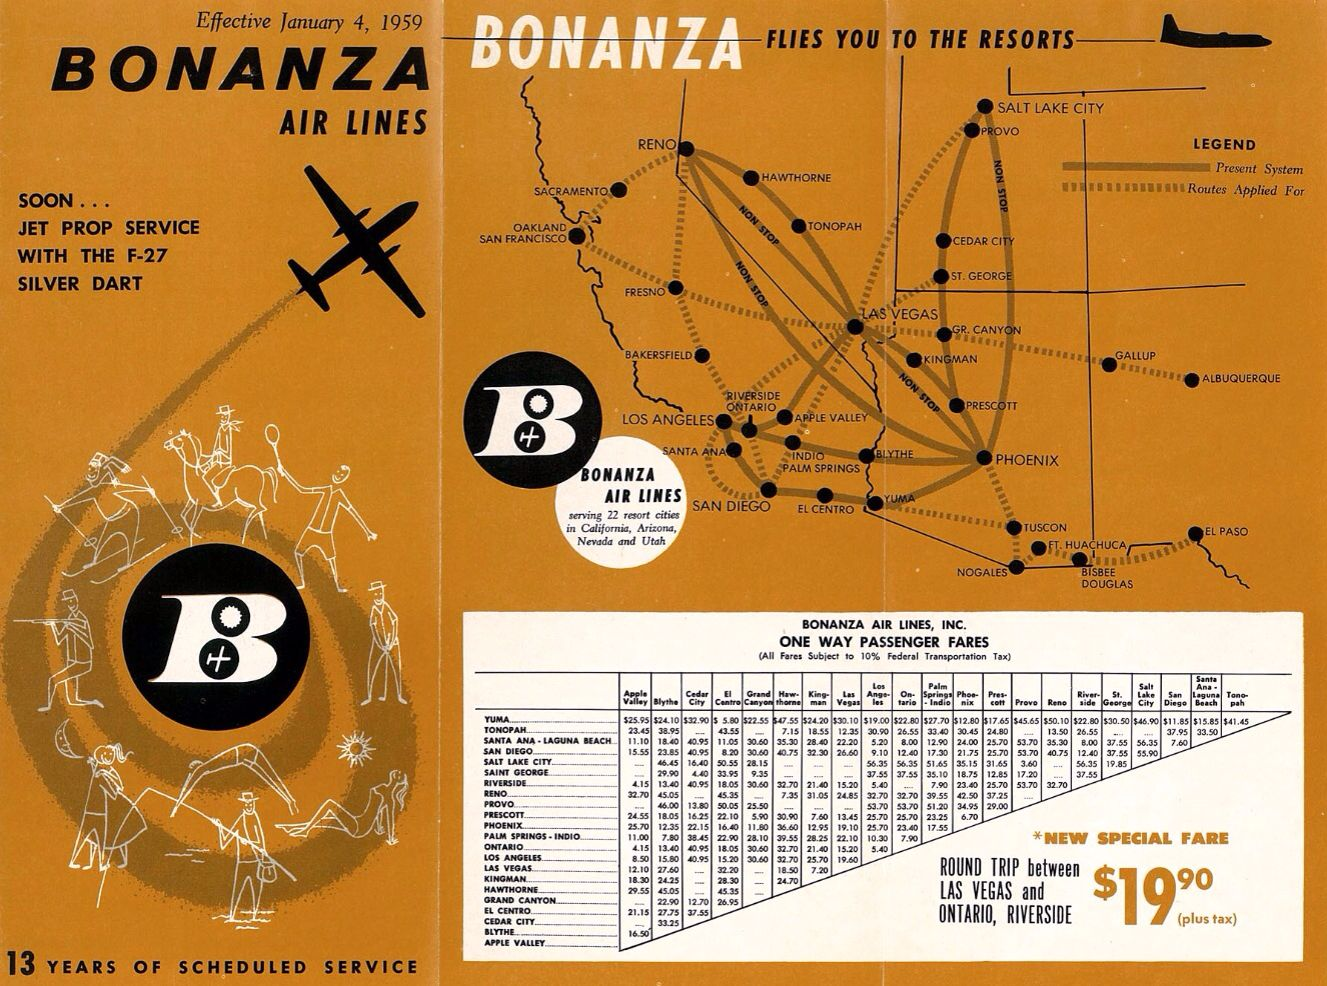 Bonanza Airlines 1950 | Old Aviation | Pacific ... on air florida route map, southwest airtran route map, southern airways route map, british airways route map, south west route map, britannia airways route map, south west airlines seat map, braniff international route map, south west airline from seattle map, southwest airlines flight routes map,